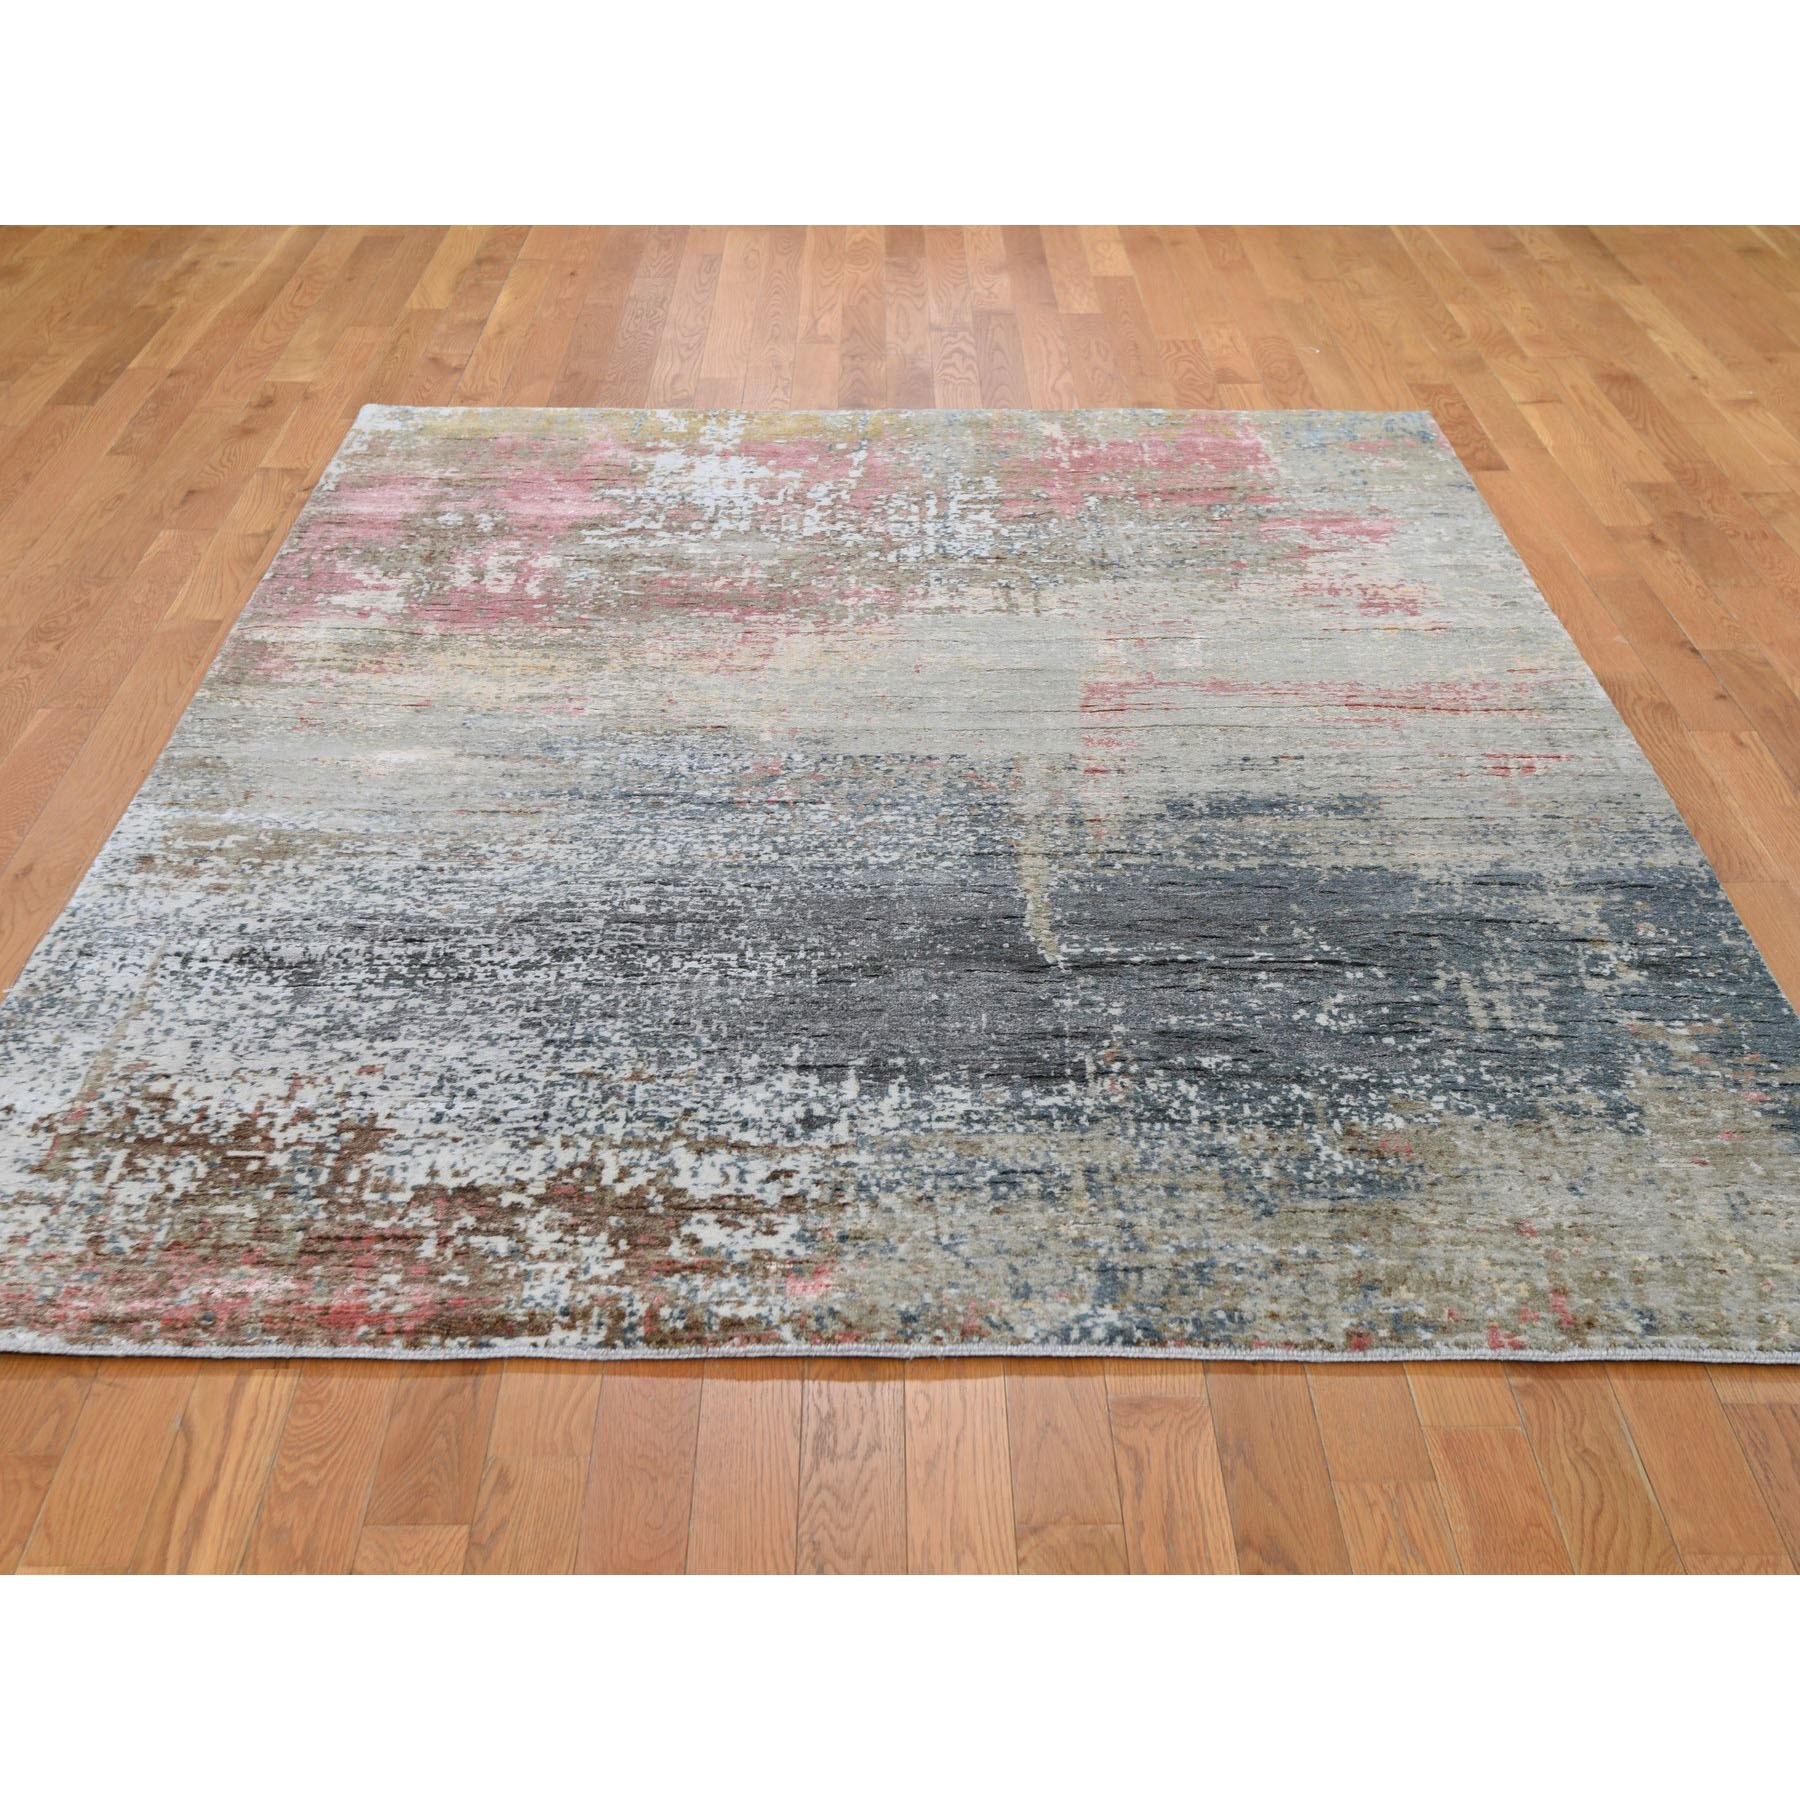 "6'x7'9"" Wool And Silk Abstract Design Hand Knotted Oriental Rug"